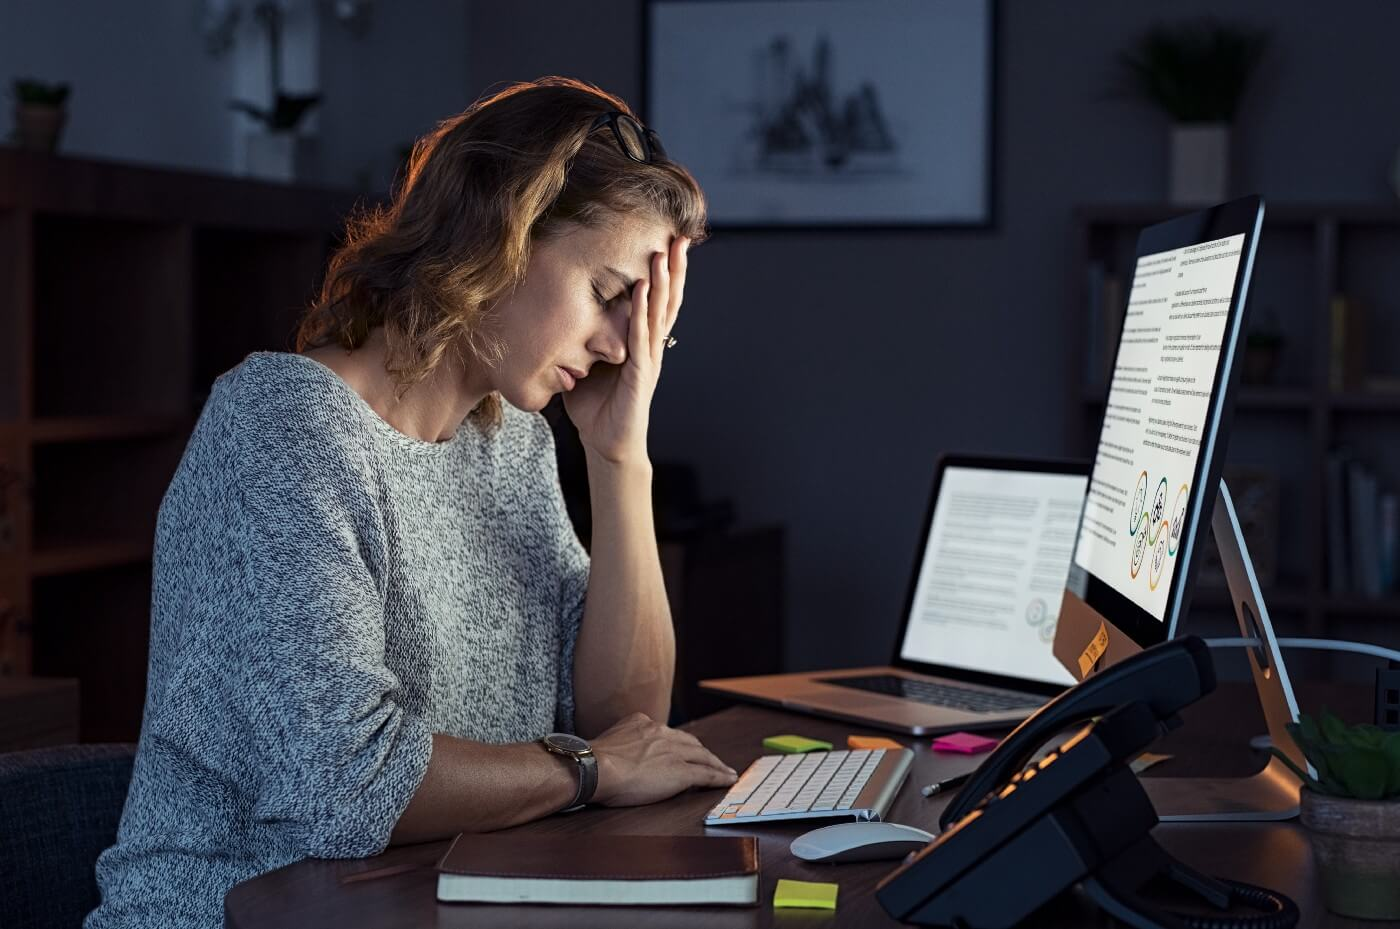 A woman at the desk, working on the computer and looking tired.